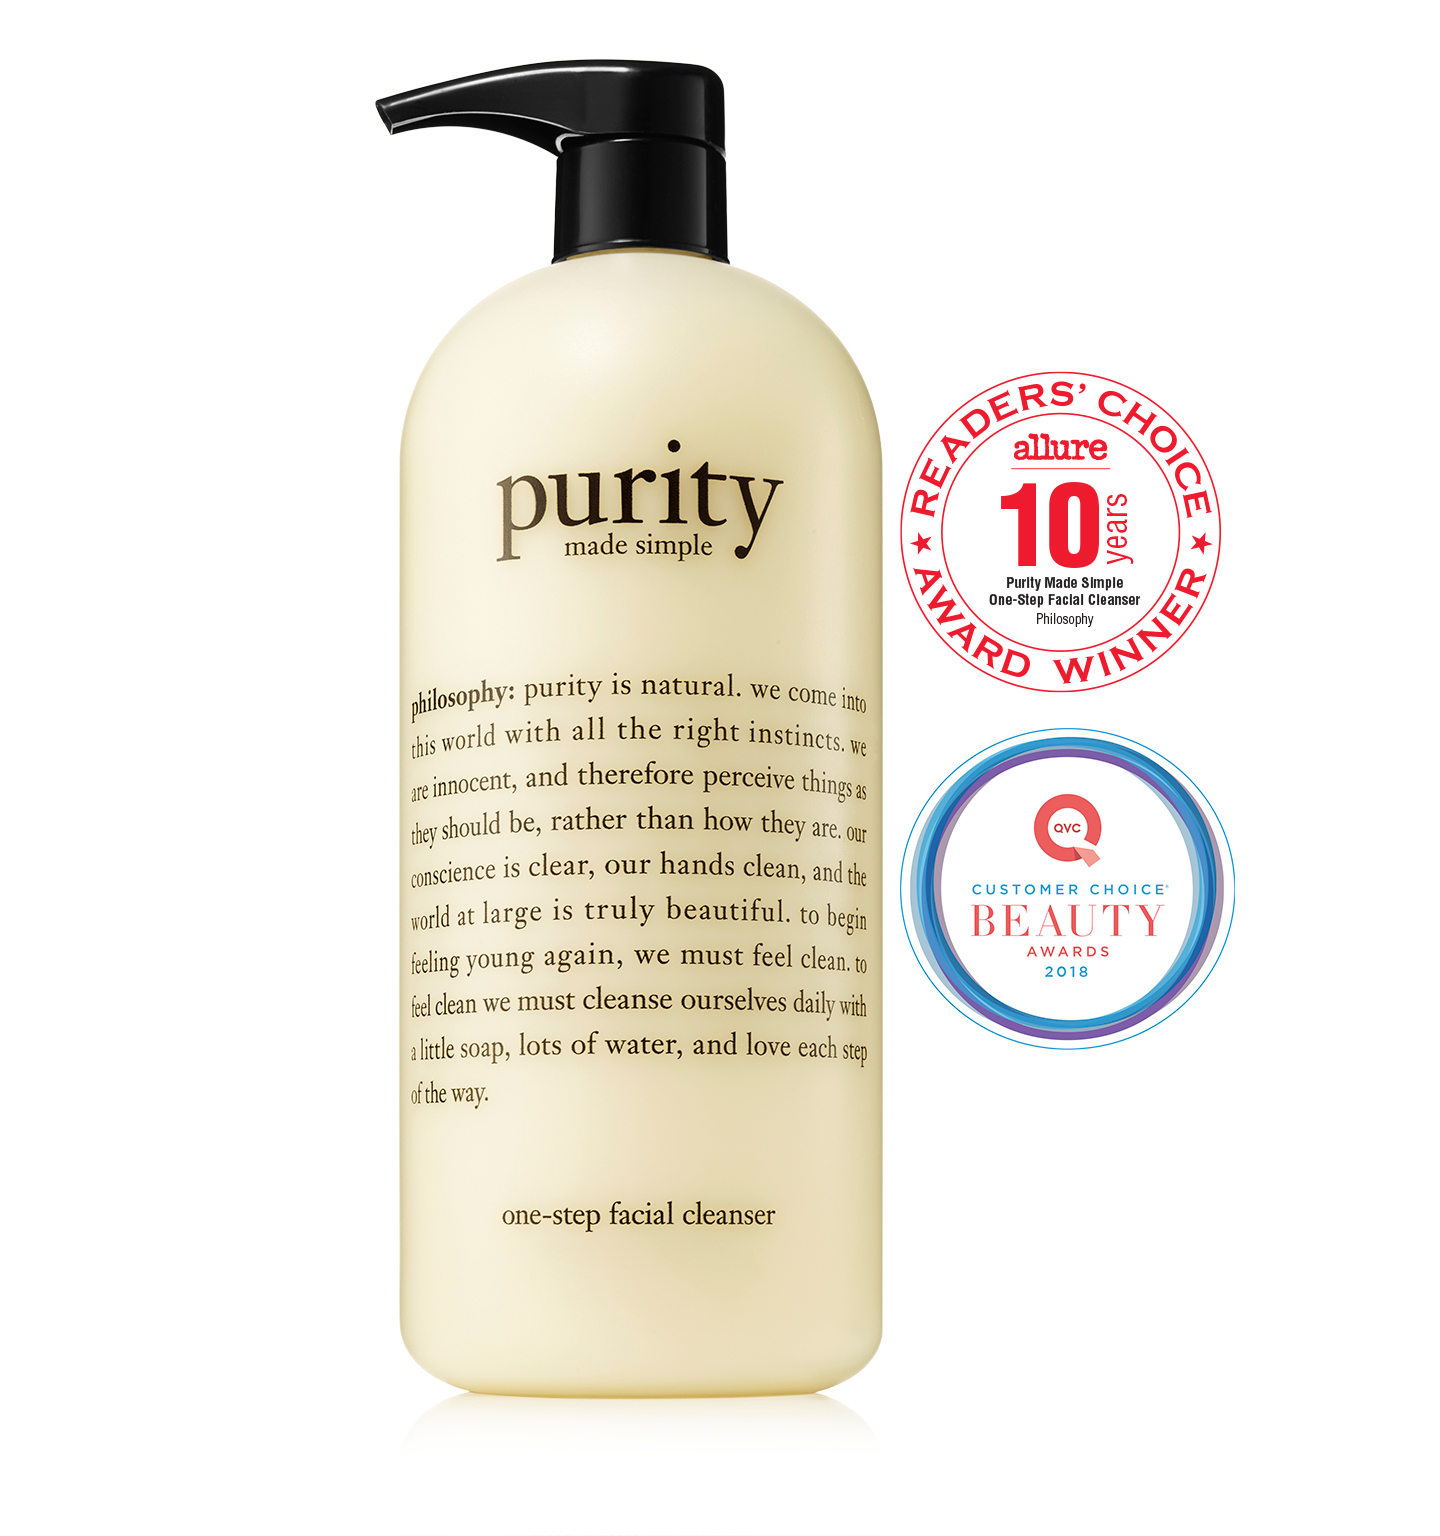 philosophy, purity made simple 32 oz. cleanser